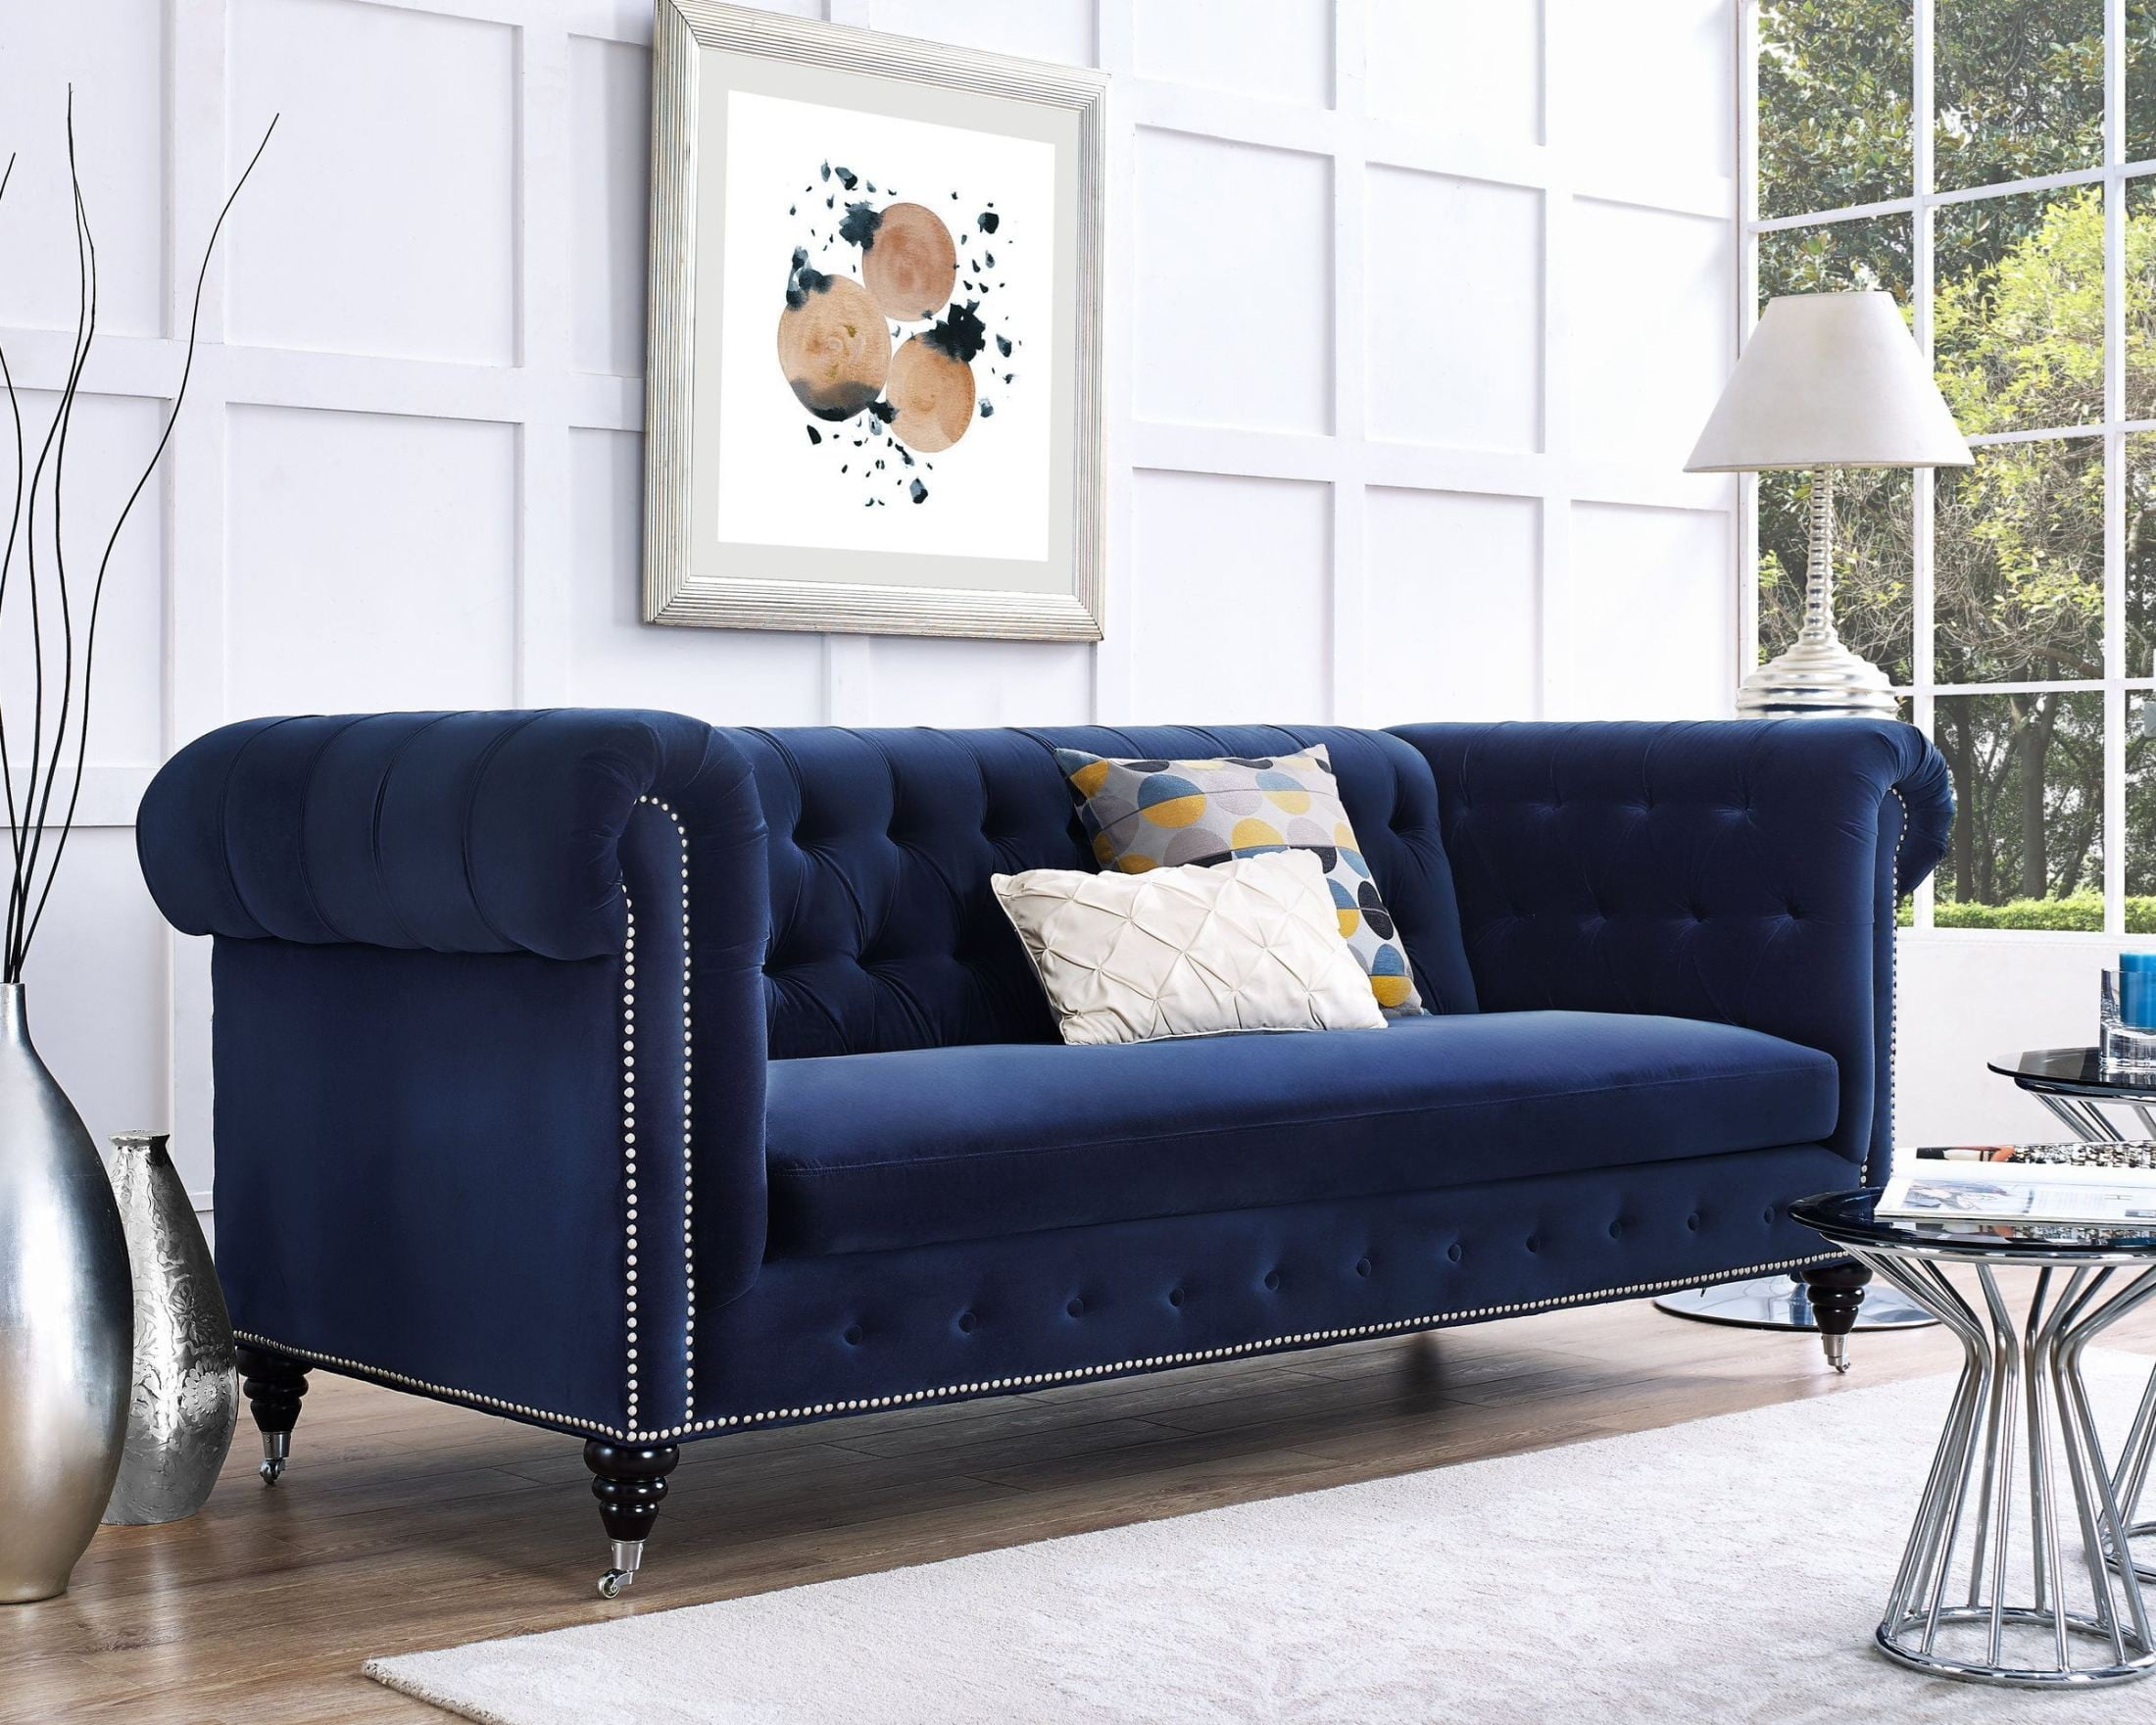 Hanny Navy Blue Velvet Sofa S99 Tov Furniture